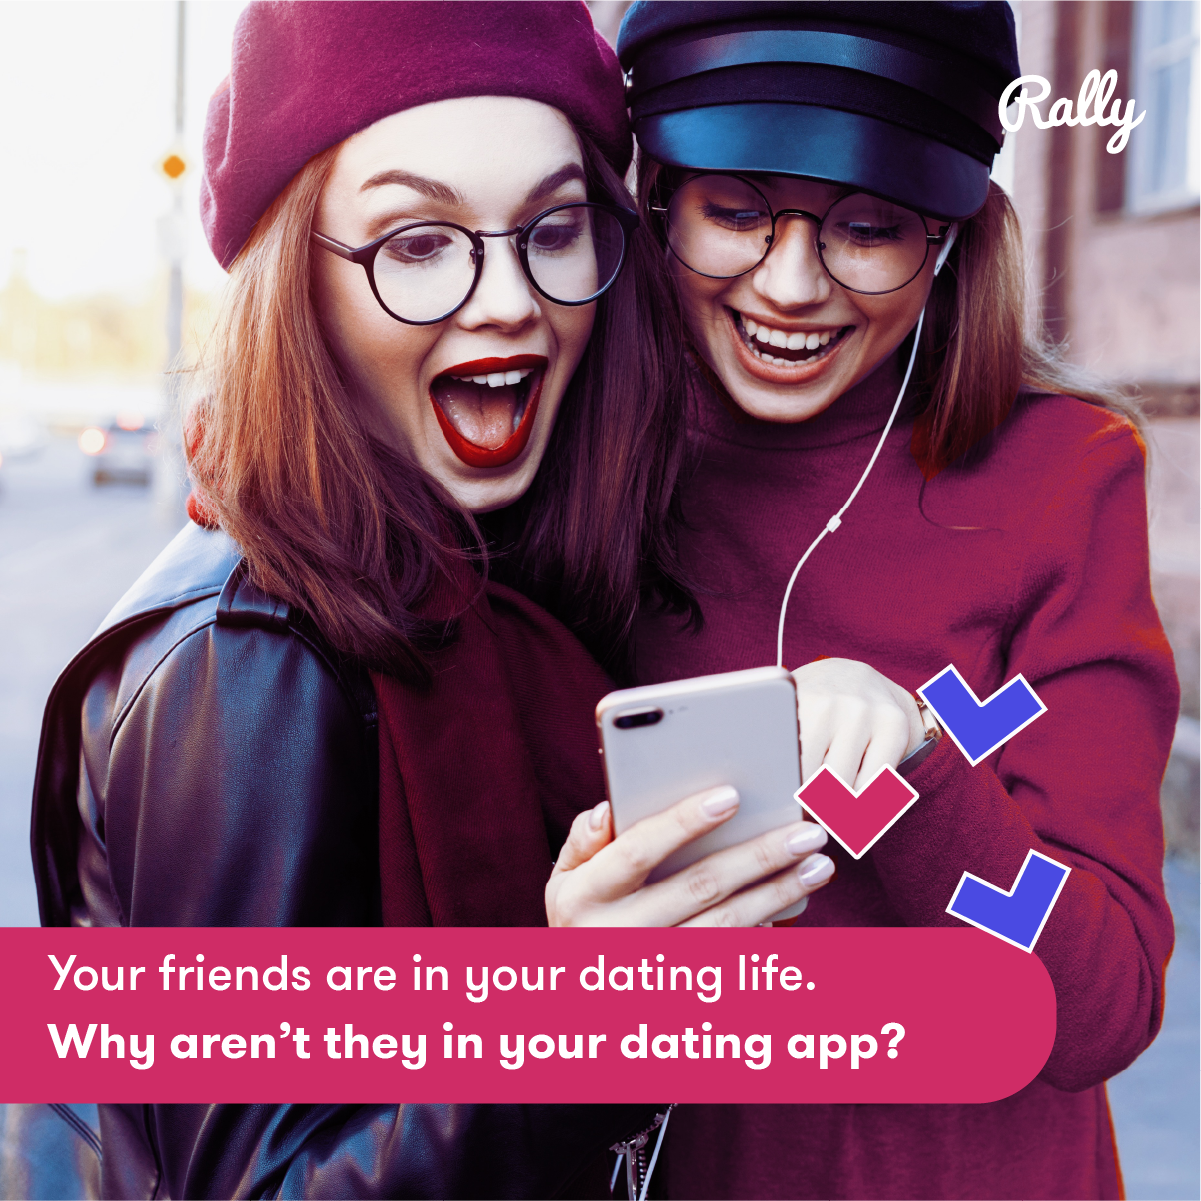 Rally-Ad-FullColor-DatingLife.png